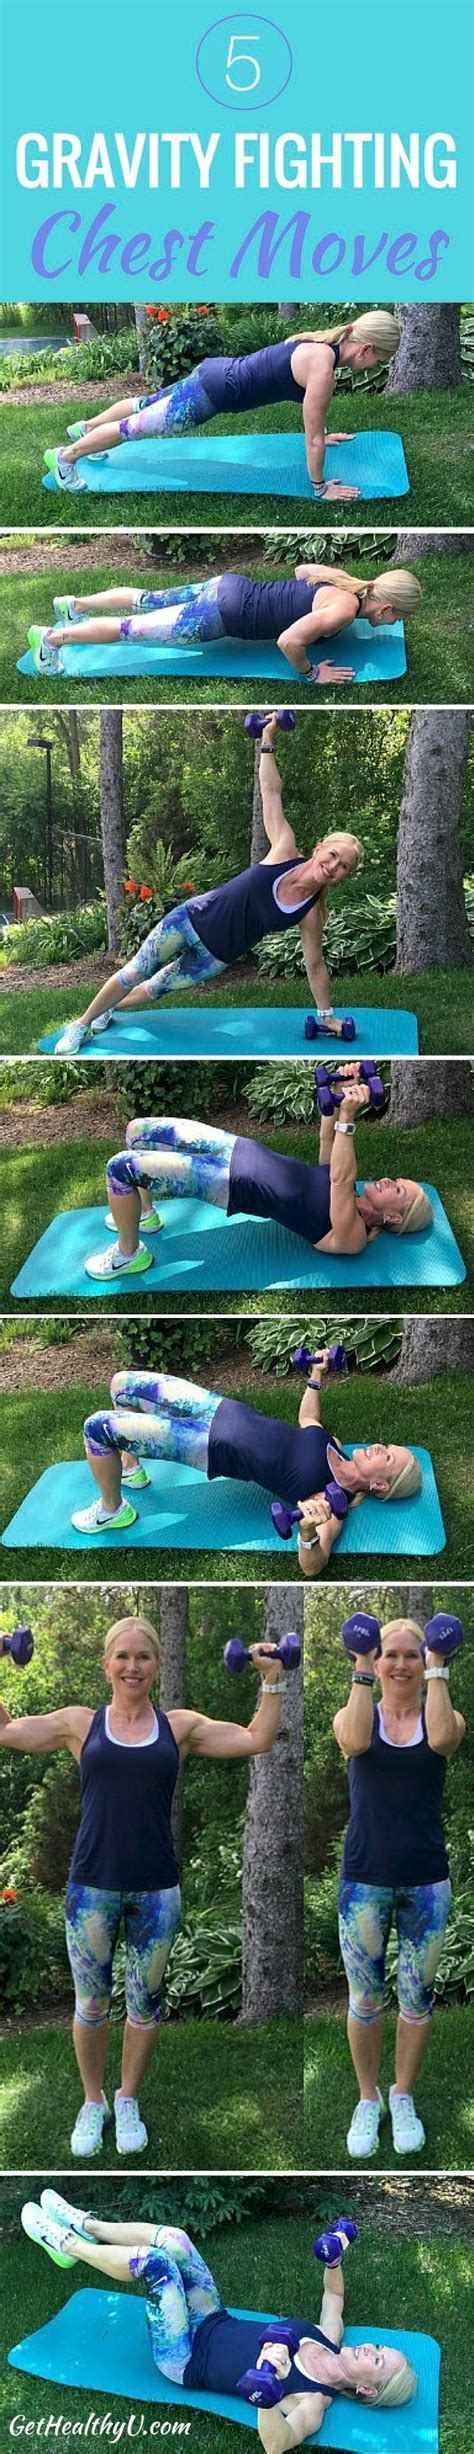 keri russell exercise routine 25 best ideas about fighting moves on pinterest martial